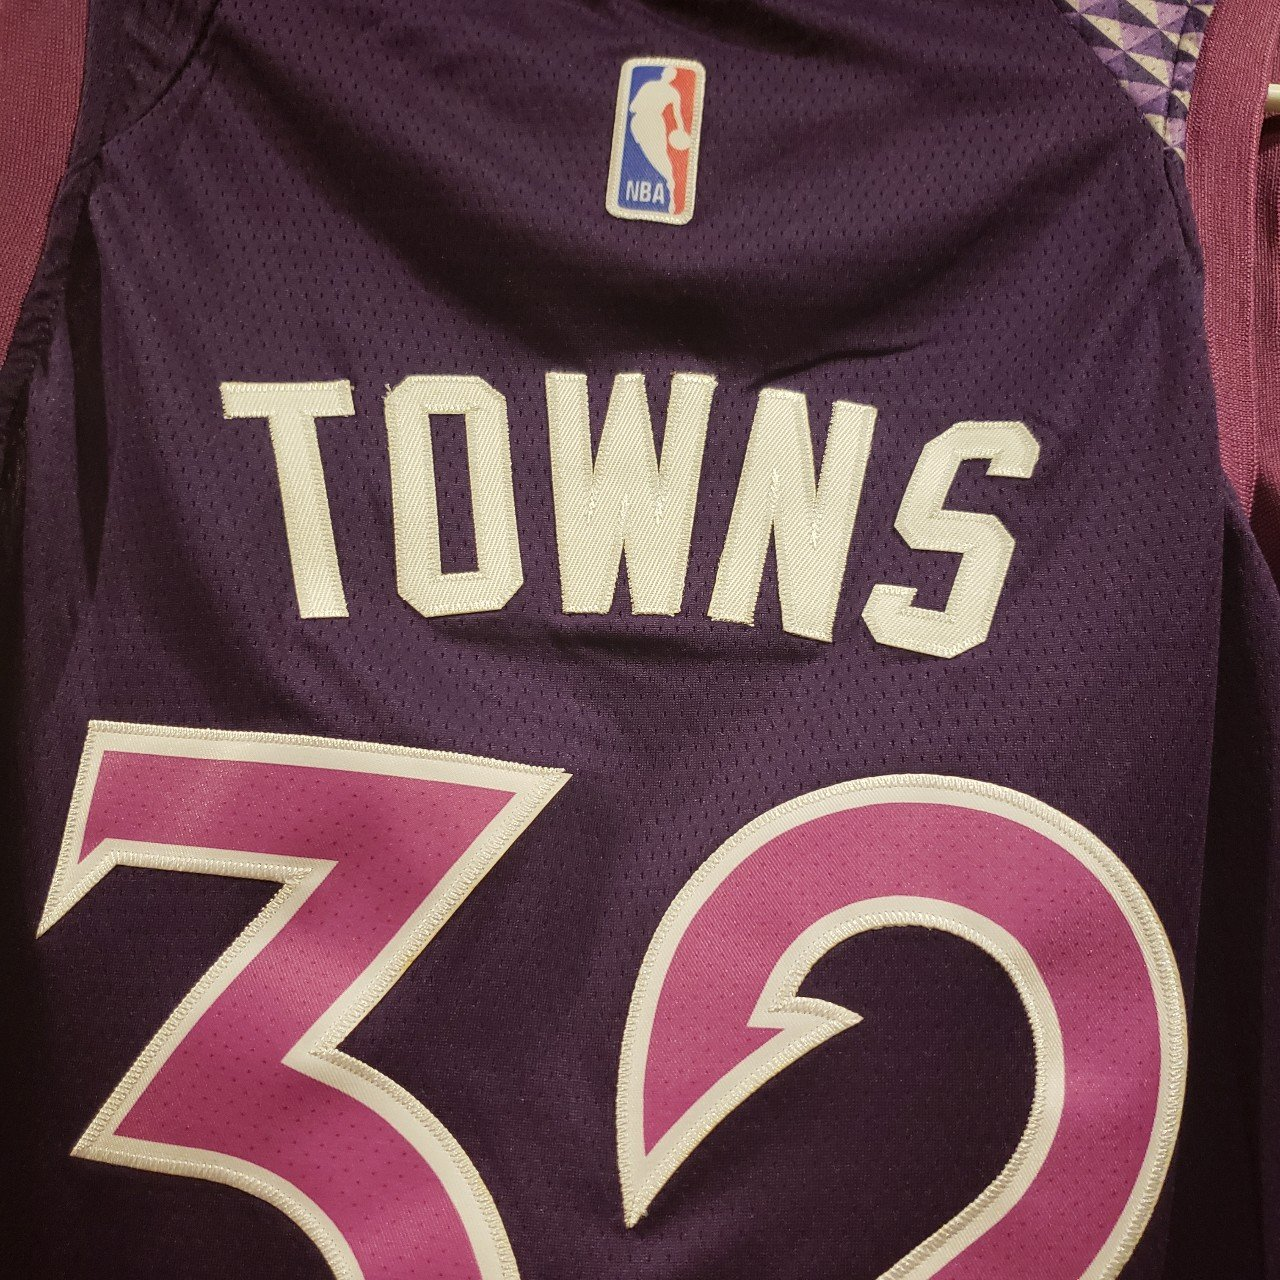 KAT Karl Anthony Towns     Brand new jersey.